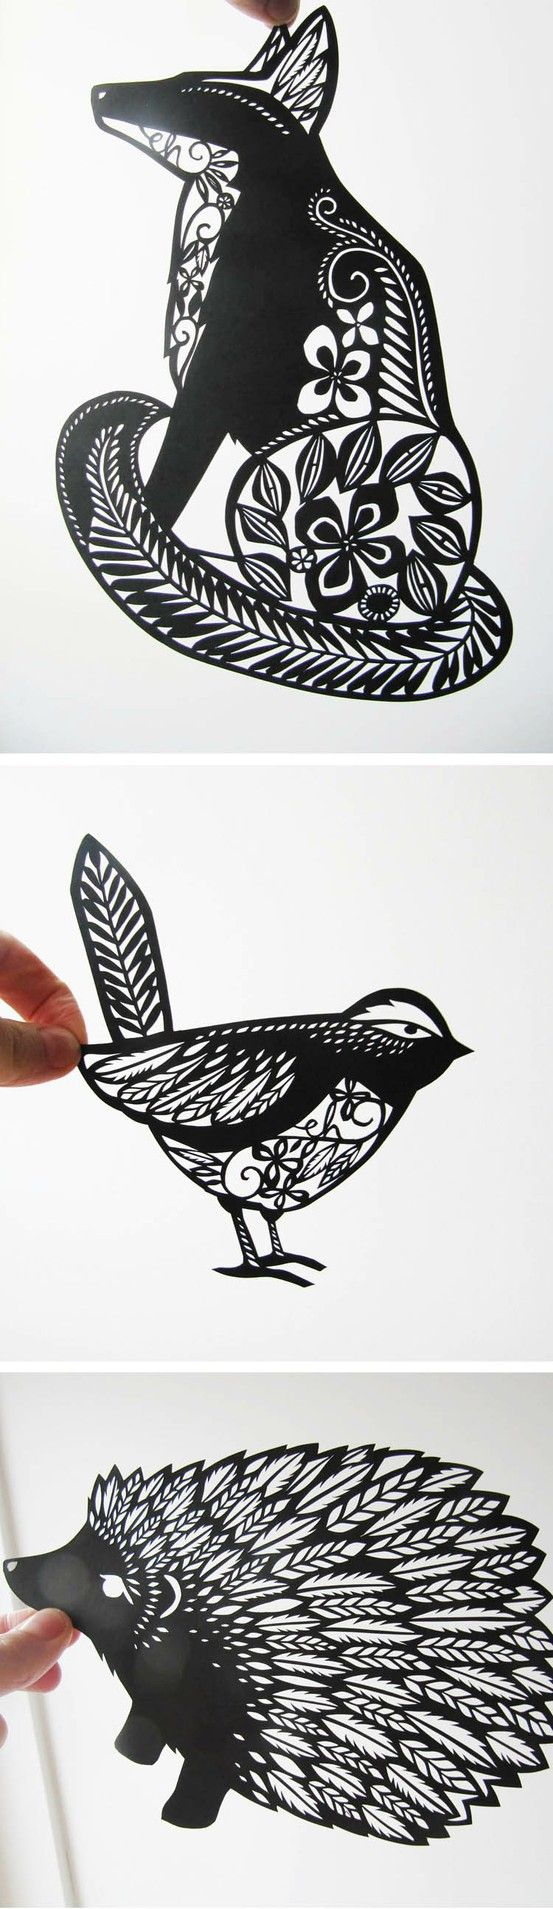 Animal Paper Cut Outs  Emily Hogarth  Black And White Paper Art